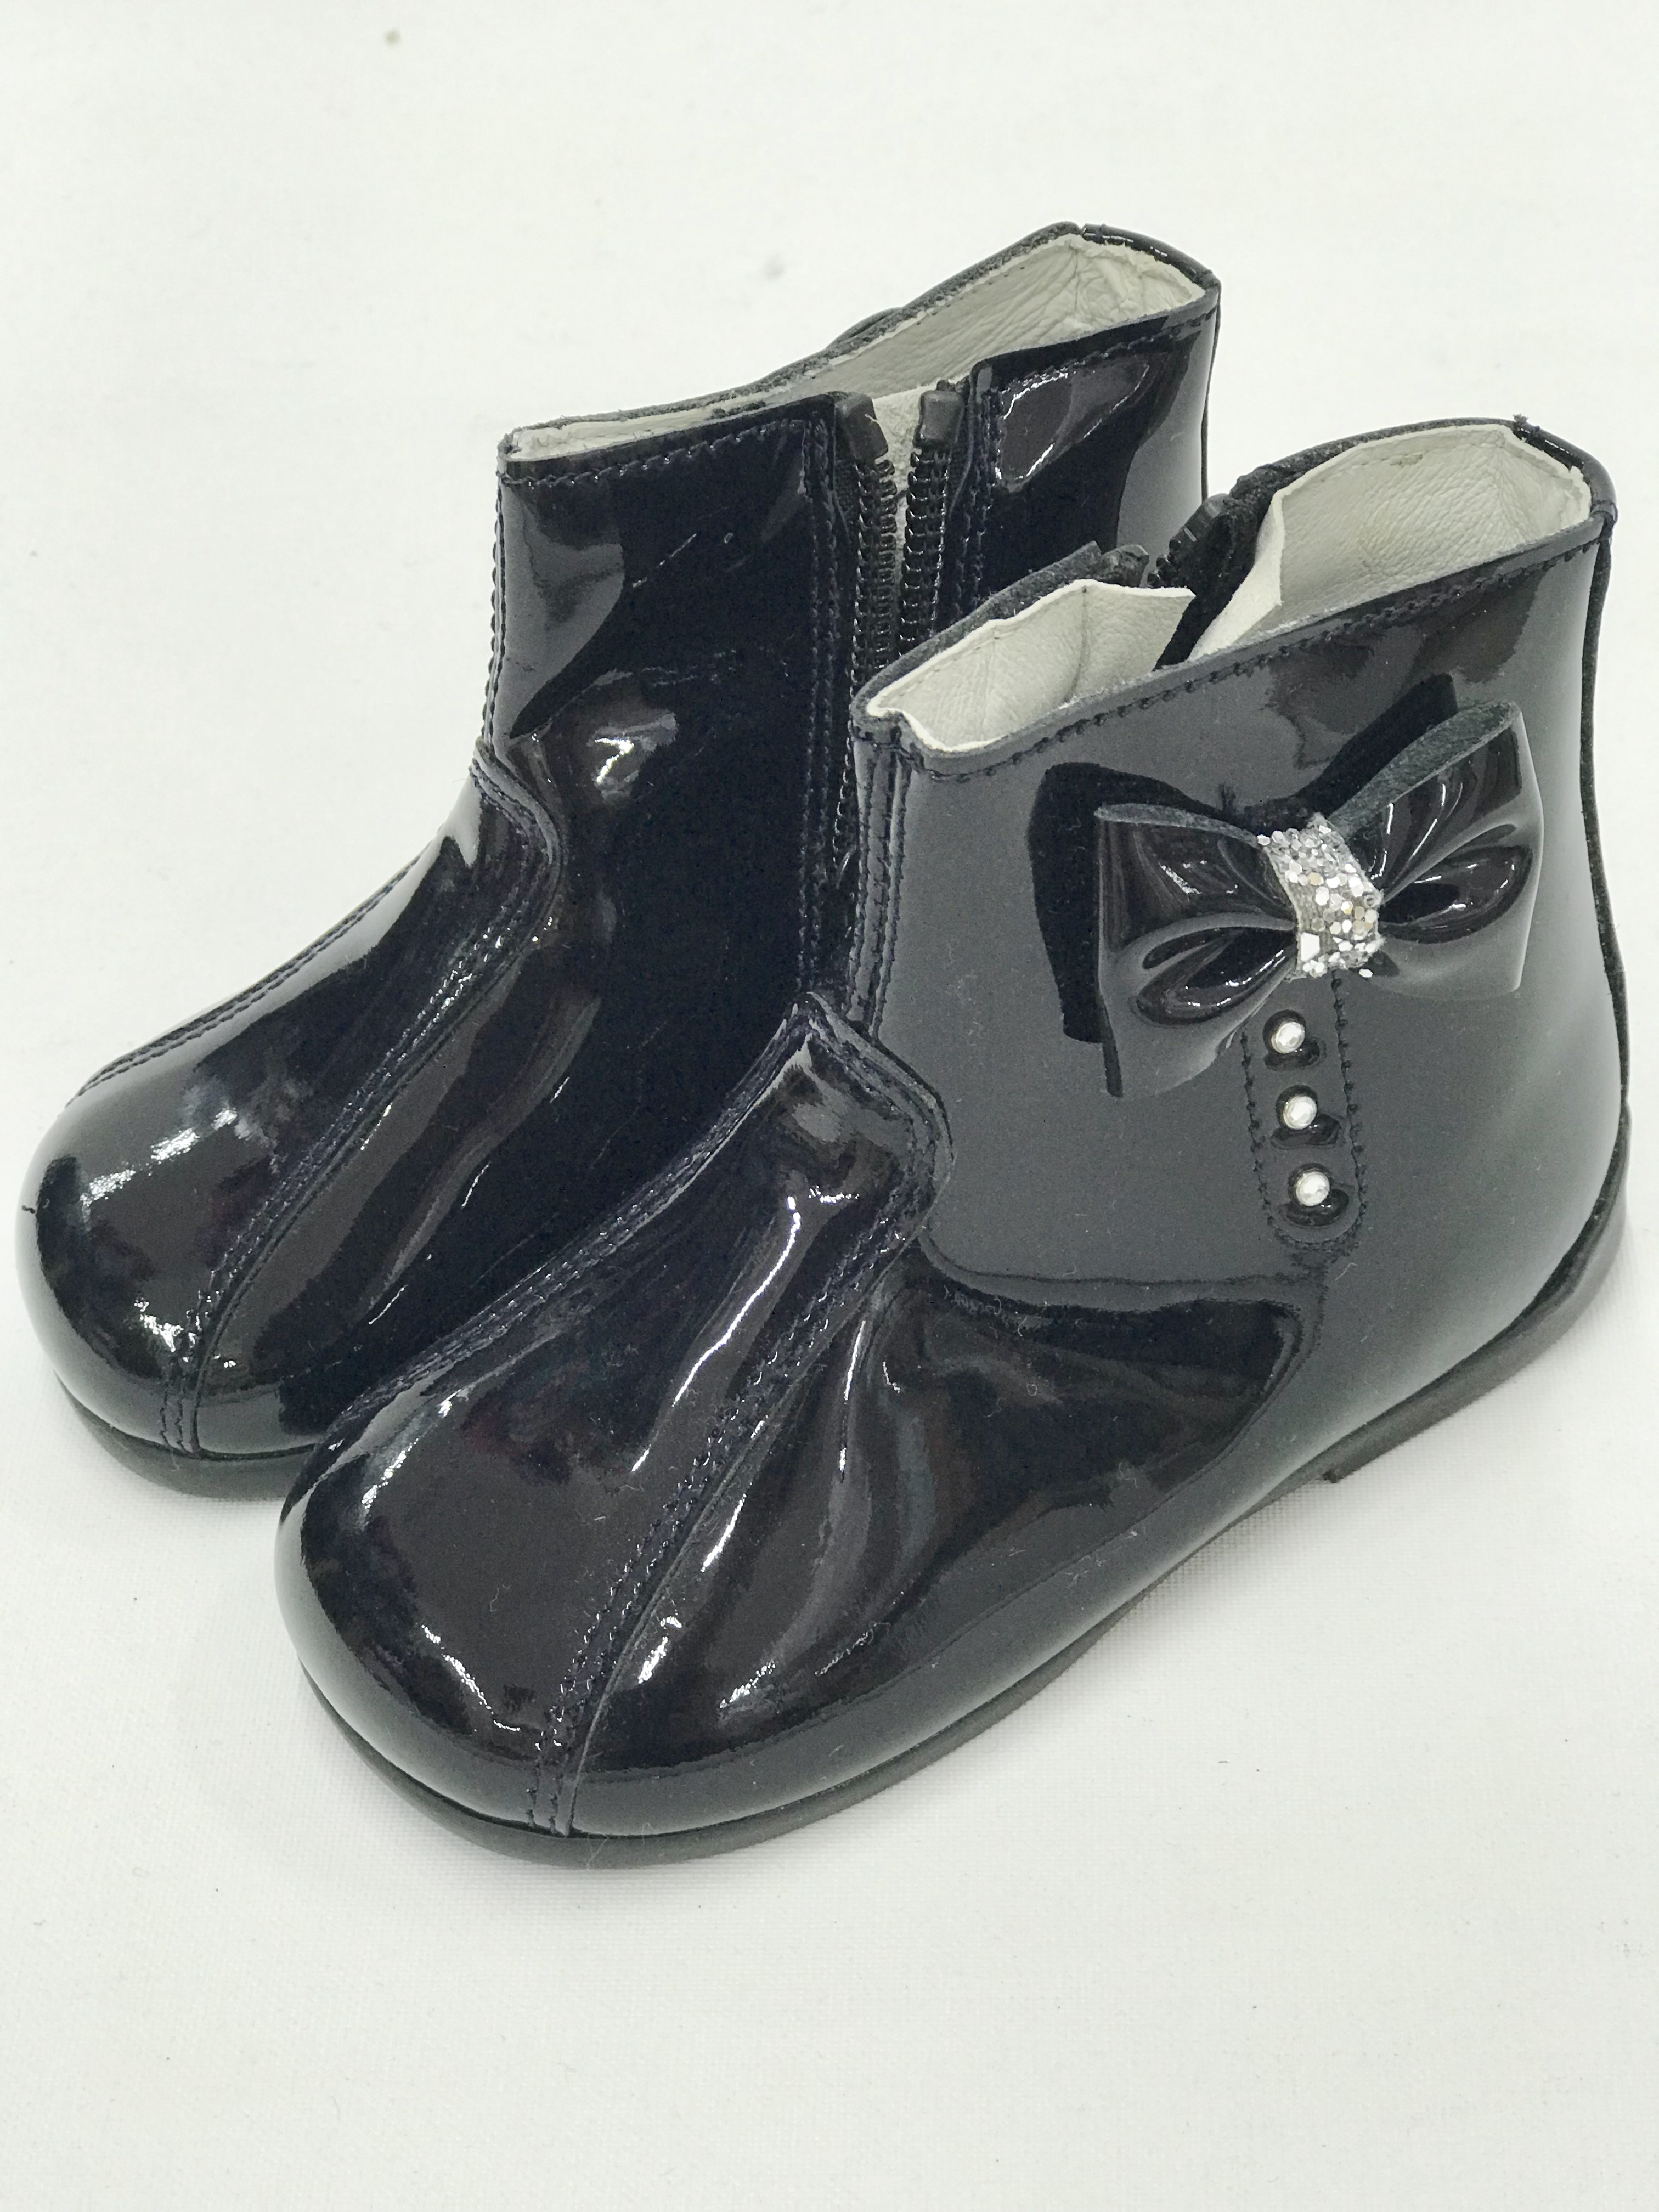 d20317cfba63d Angela's Shoes & Boots | Andanines | Fofito | Baby & Children's Gifts